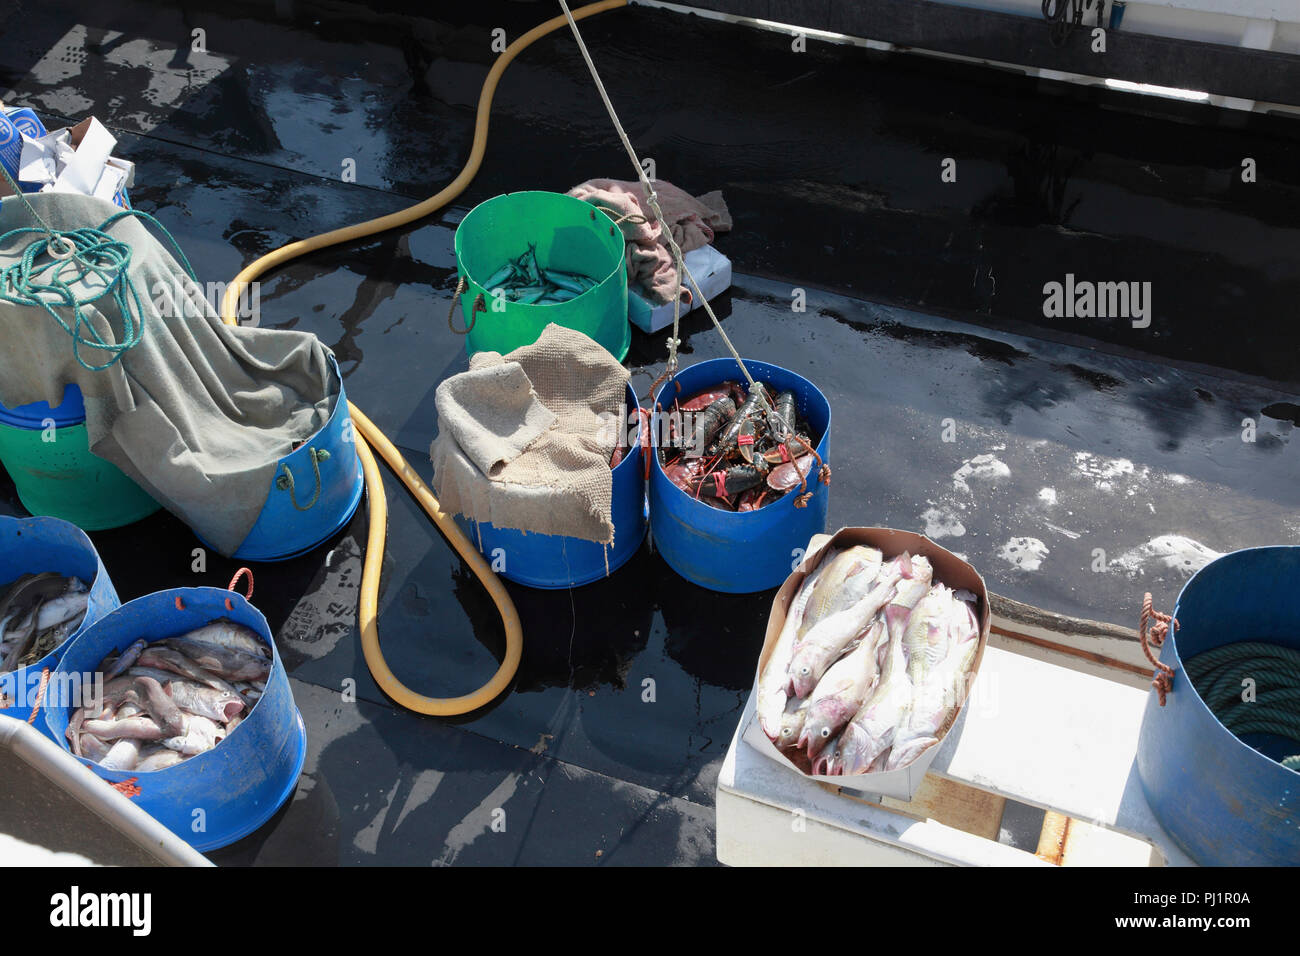 The deck of a small fishing boat with freshly caught fish. A bucket of crabs and lobsters is about to be lifted off the deck - Stock Image